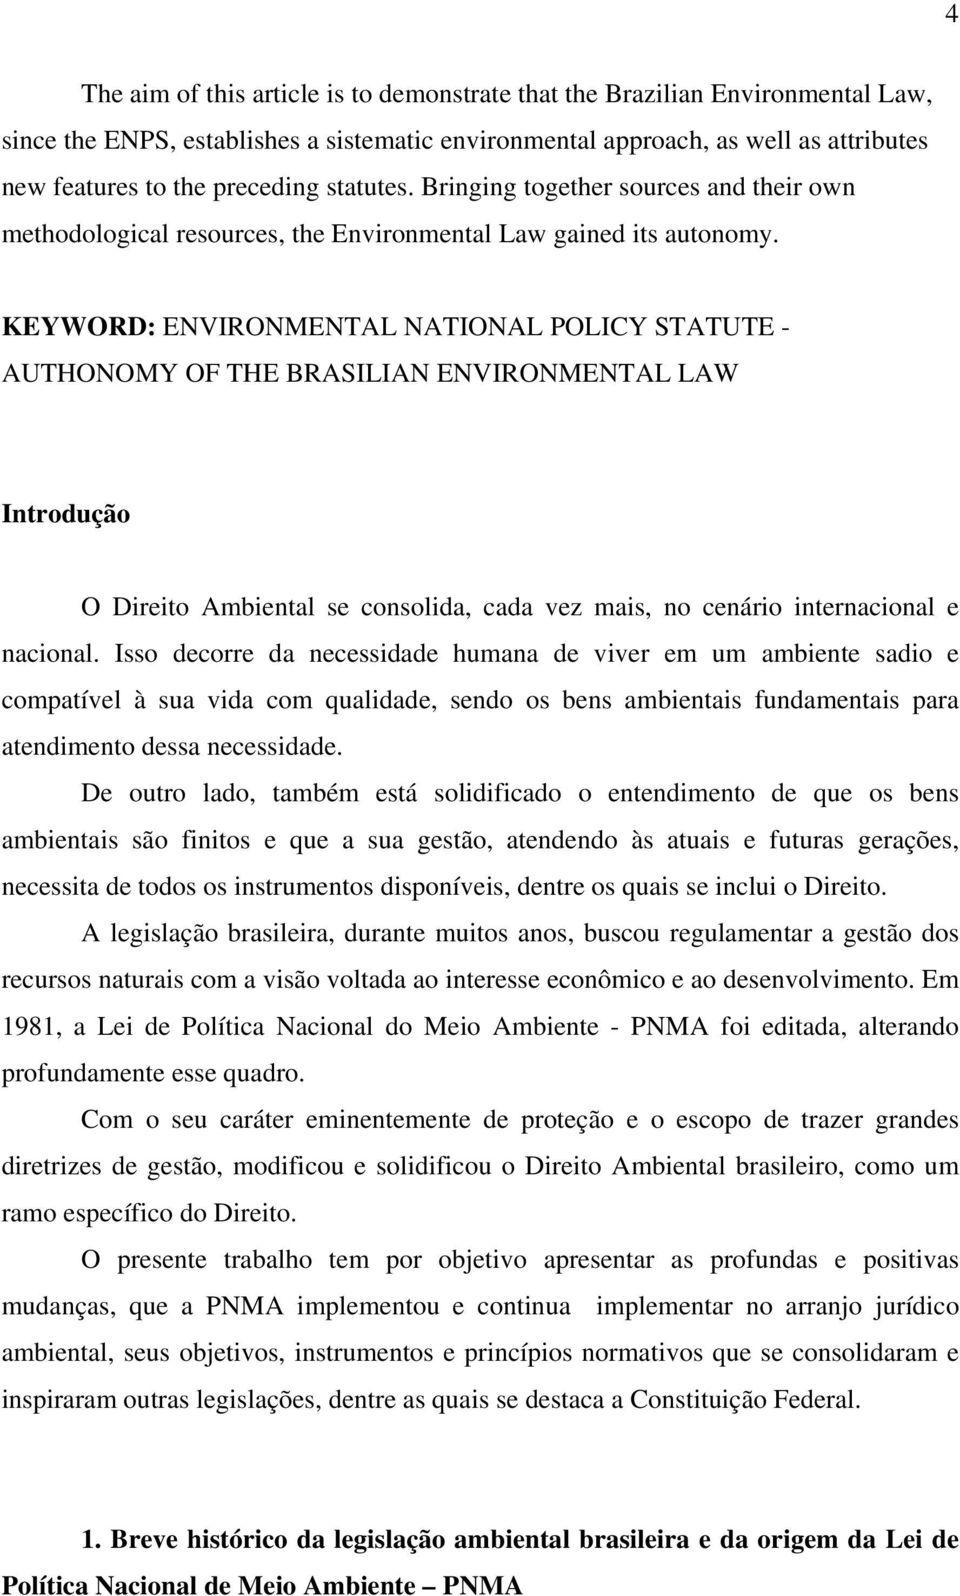 KEYWORD: ENVIRONMENTAL NATIONAL POLICY STATUTE - AUTHONOMY OF THE BRASILIAN ENVIRONMENTAL LAW Introdução O Direito Ambiental se consolida, cada vez mais, no cenário internacional e nacional.